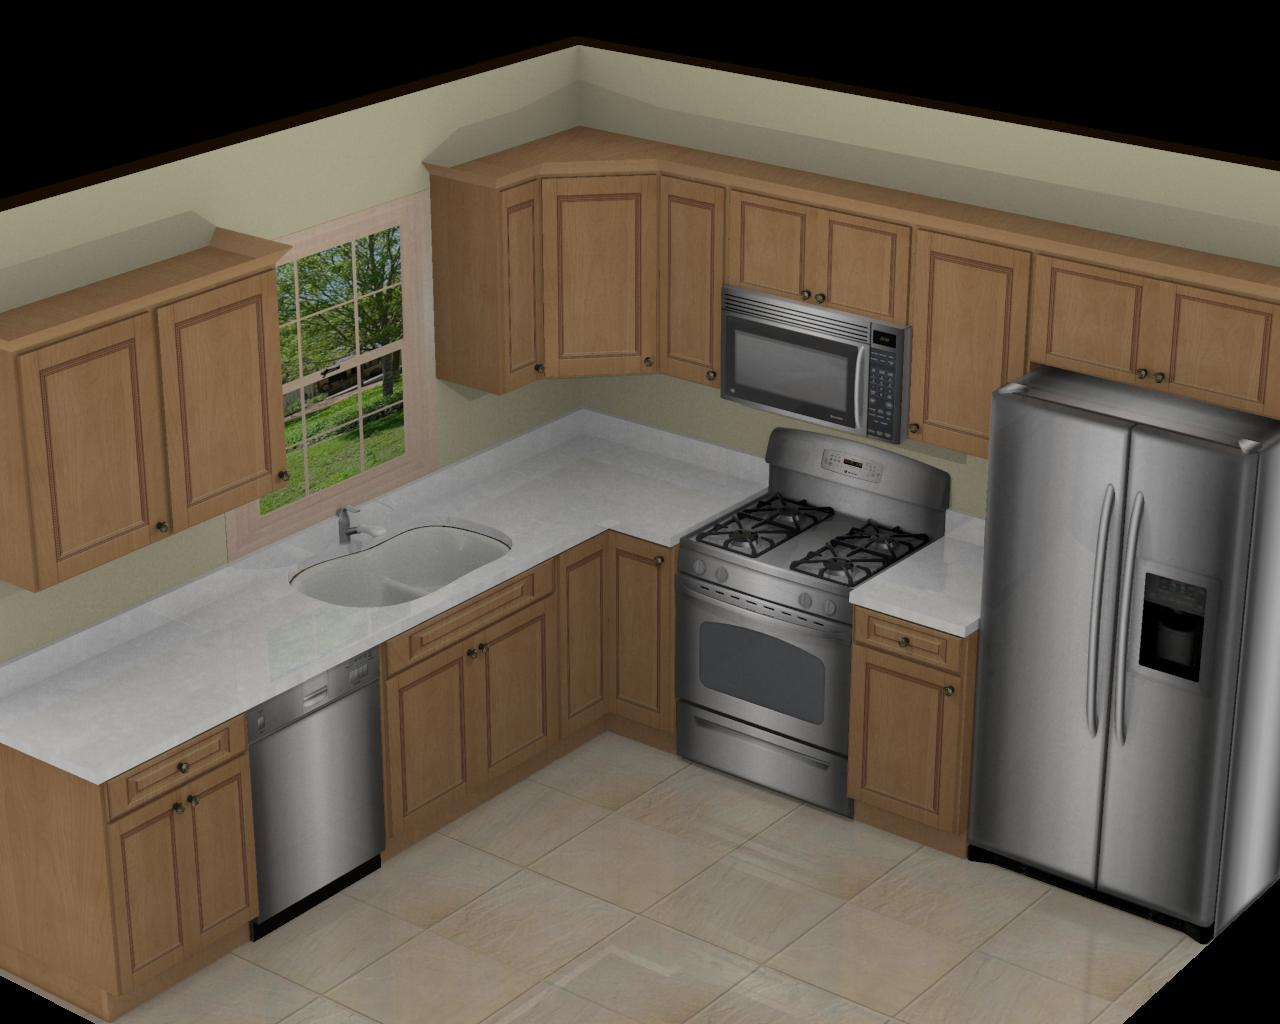 Foundation dezin decor 3d kitchen model design for Kitchen remodel design ideas